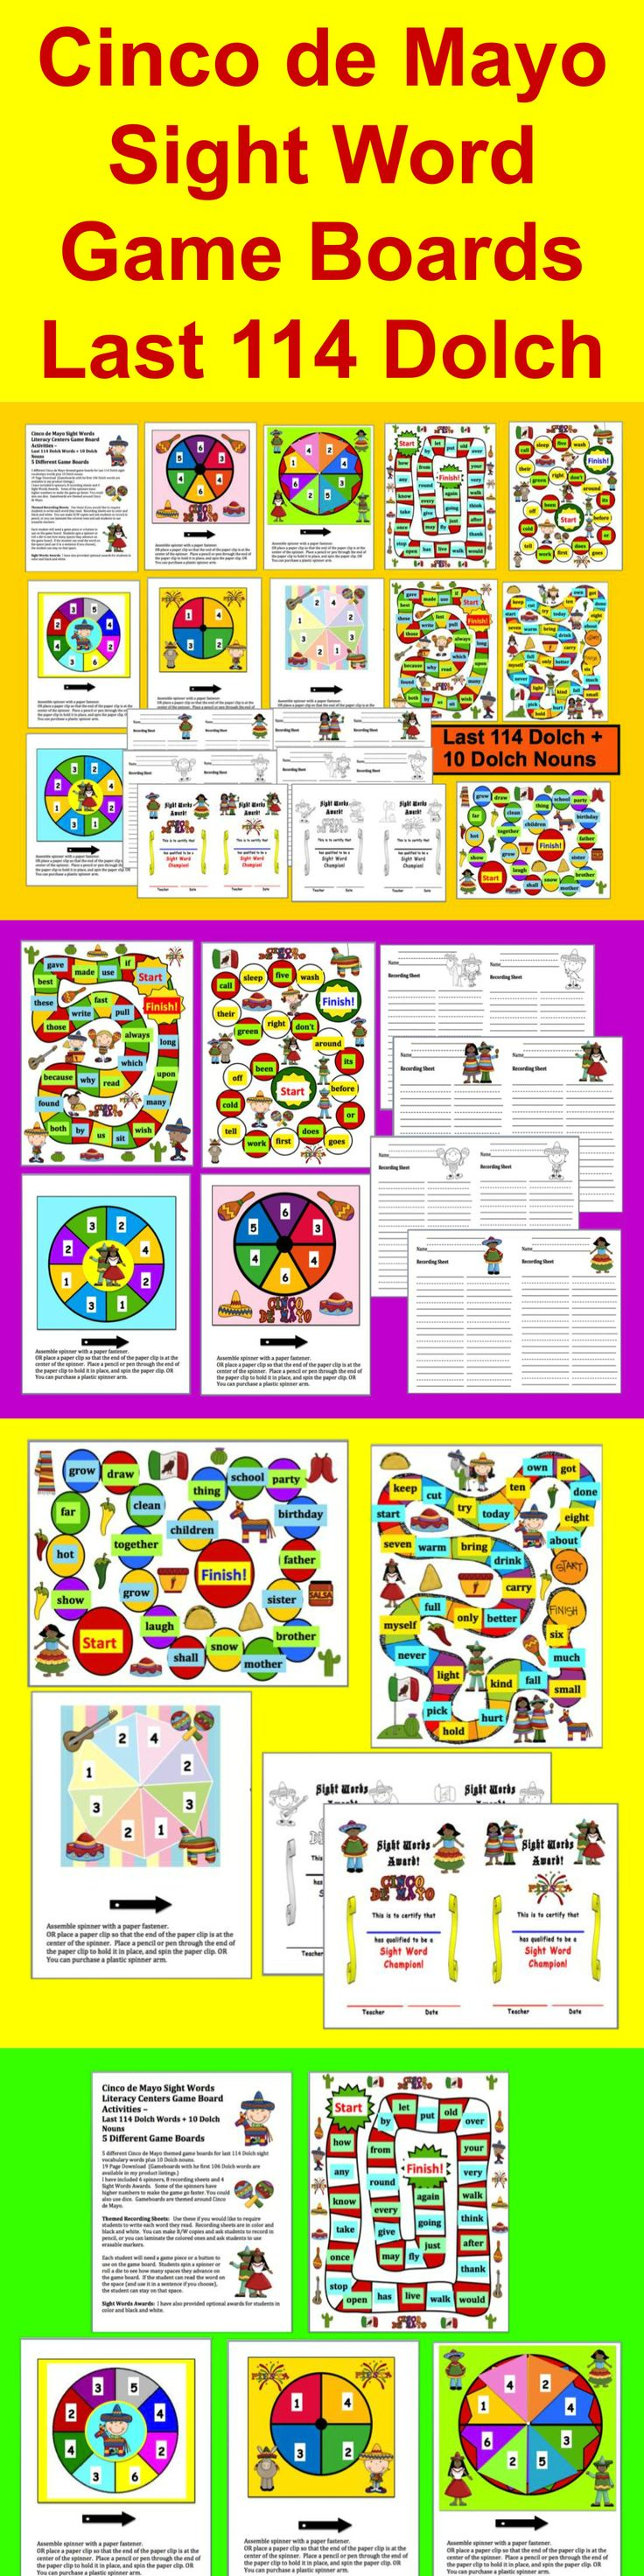 Uncategorized 5 De Mayo Facts 102 best teaching cinco de mayo images on pinterest sight words literacy centers game board activities last 114 dolch words